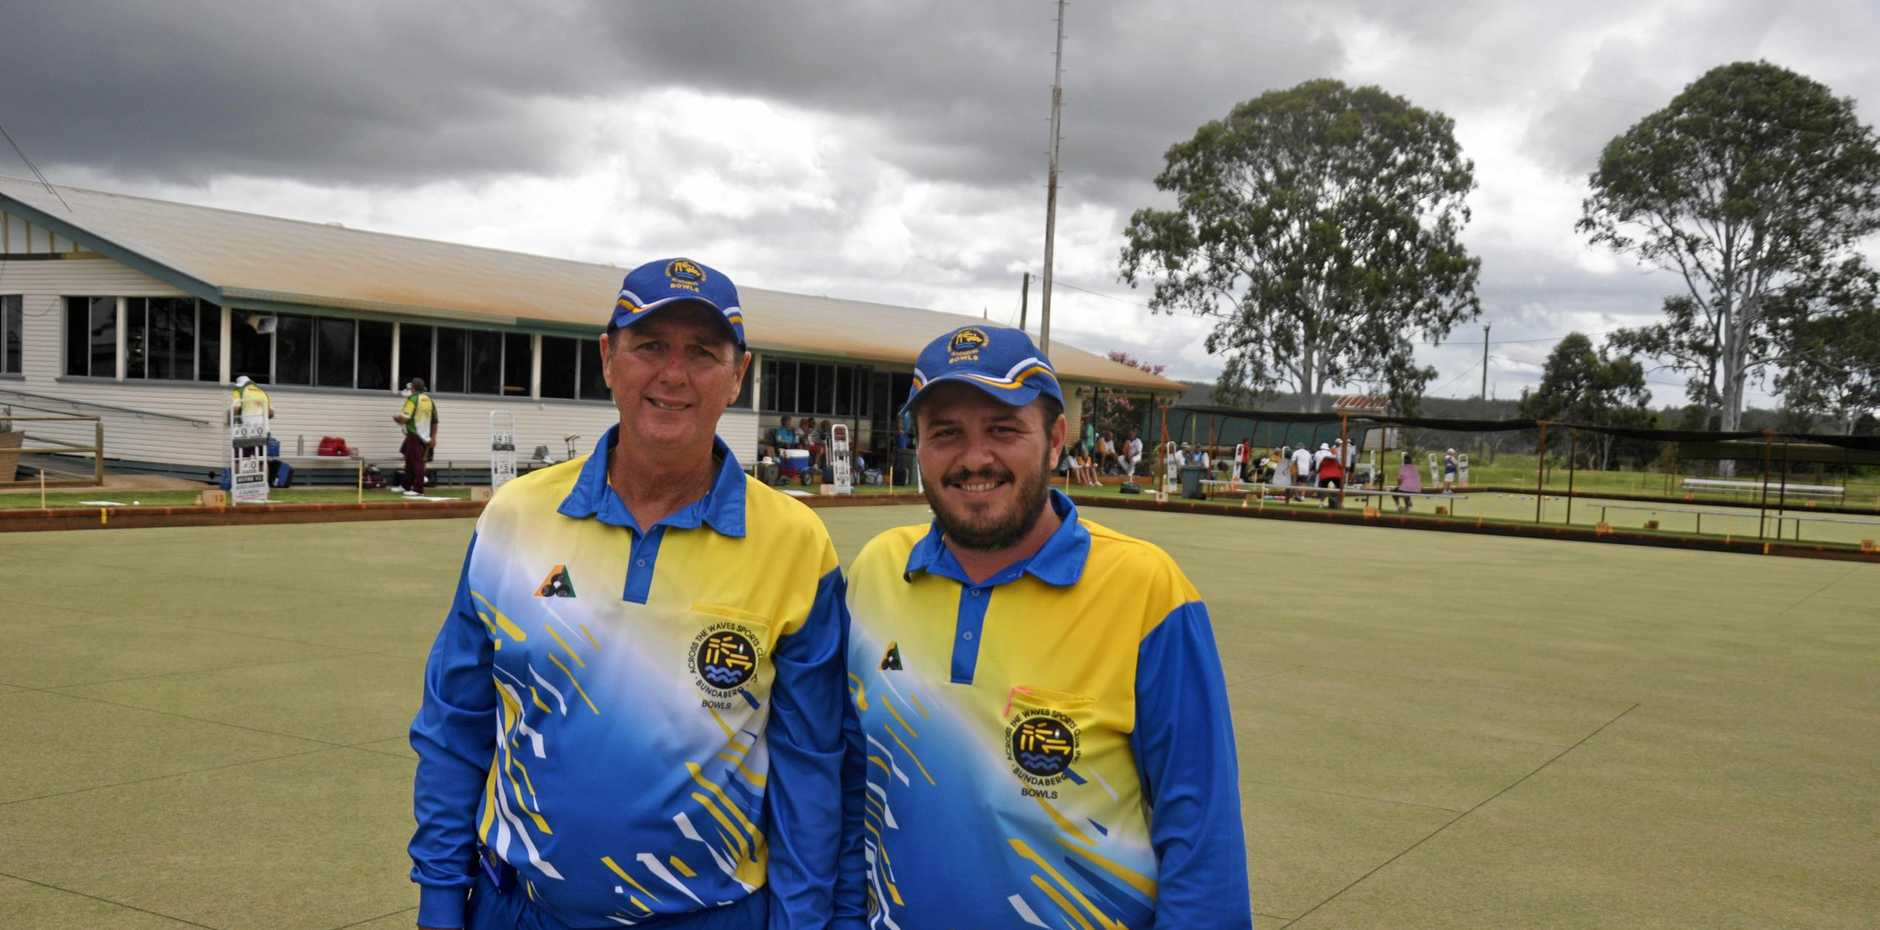 BIG LEAGUES: Former state and national champion Kurt Brown (left) represented Bundaberg in the Monto Pairs Open.